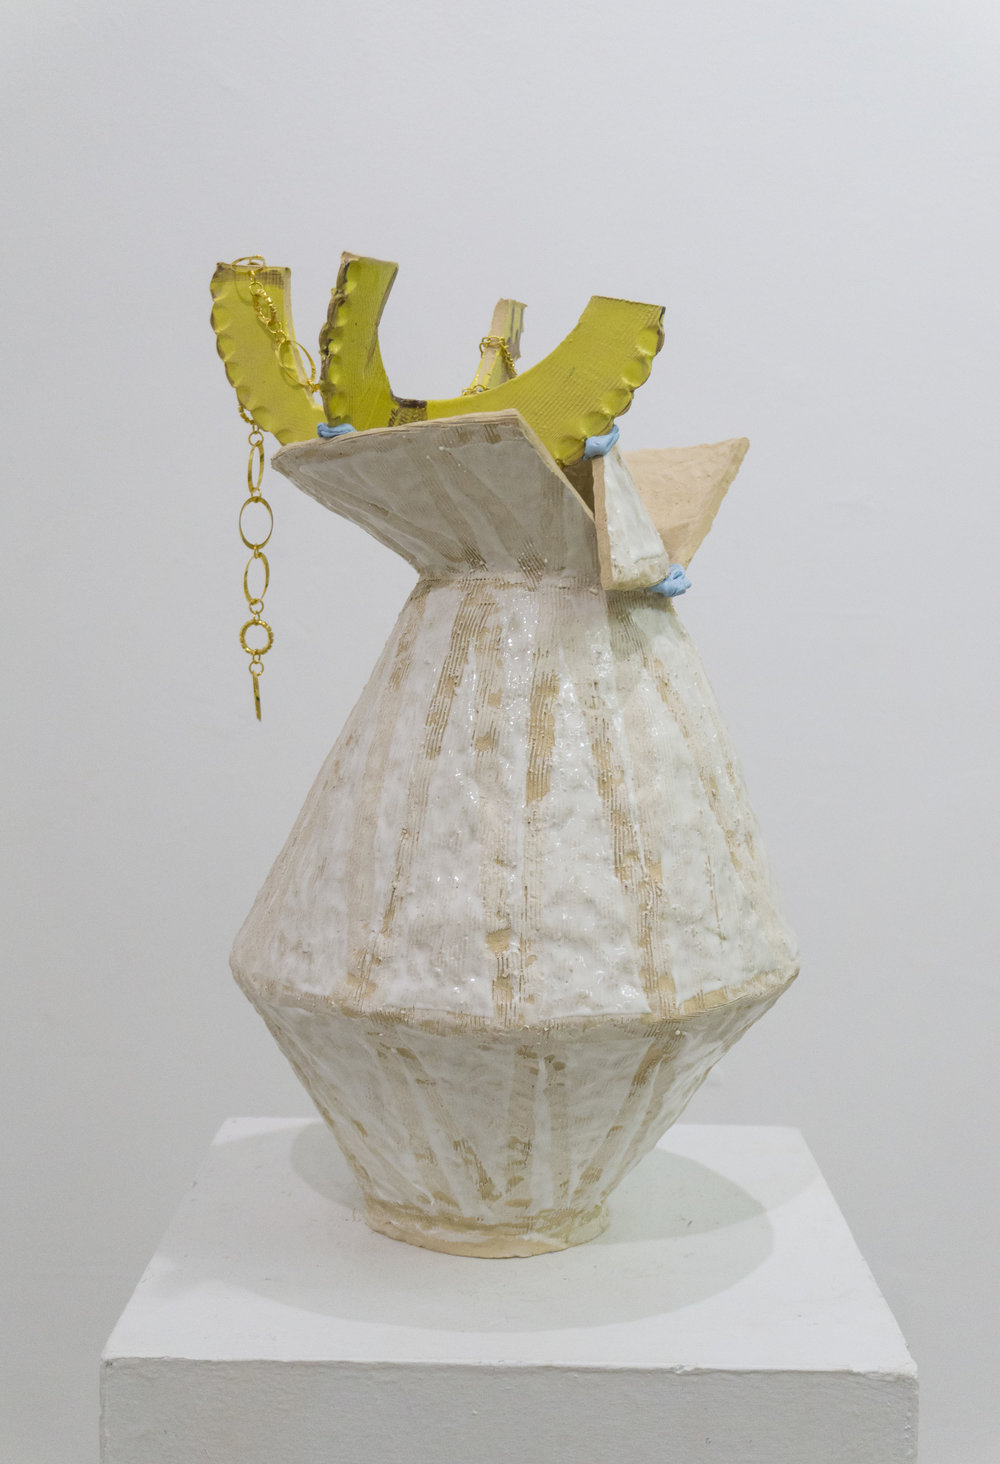 Untitled Ceramic, glaze, polymer clay, gold jewelry 22h x 14l x 12w in 2016